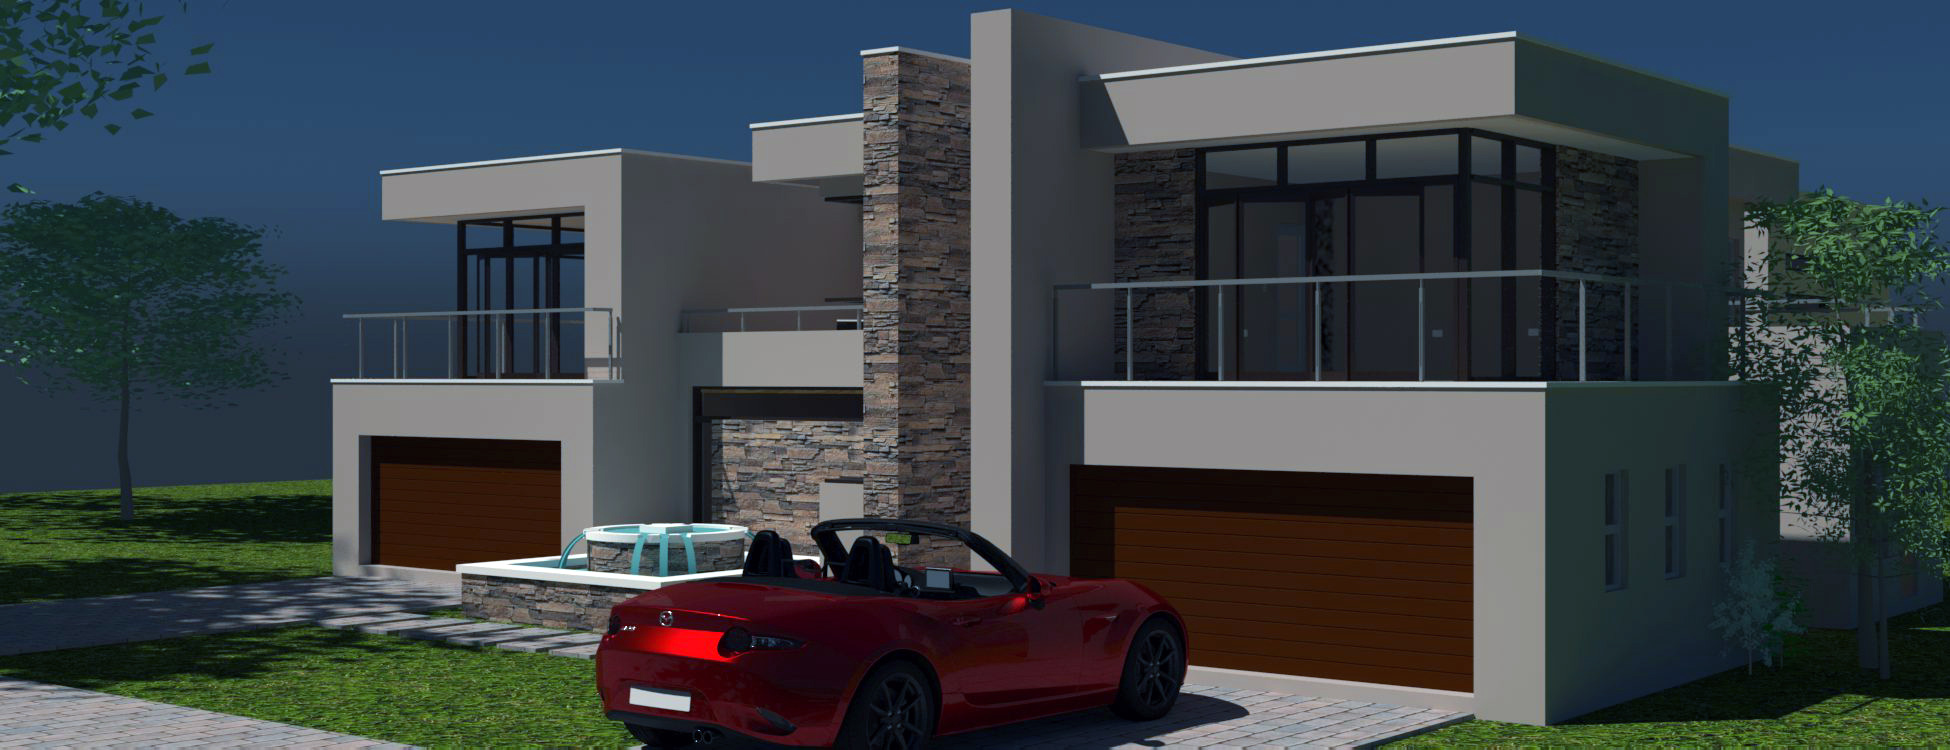 2 Storey House Design | Modern Style 4 Bedroom House ...